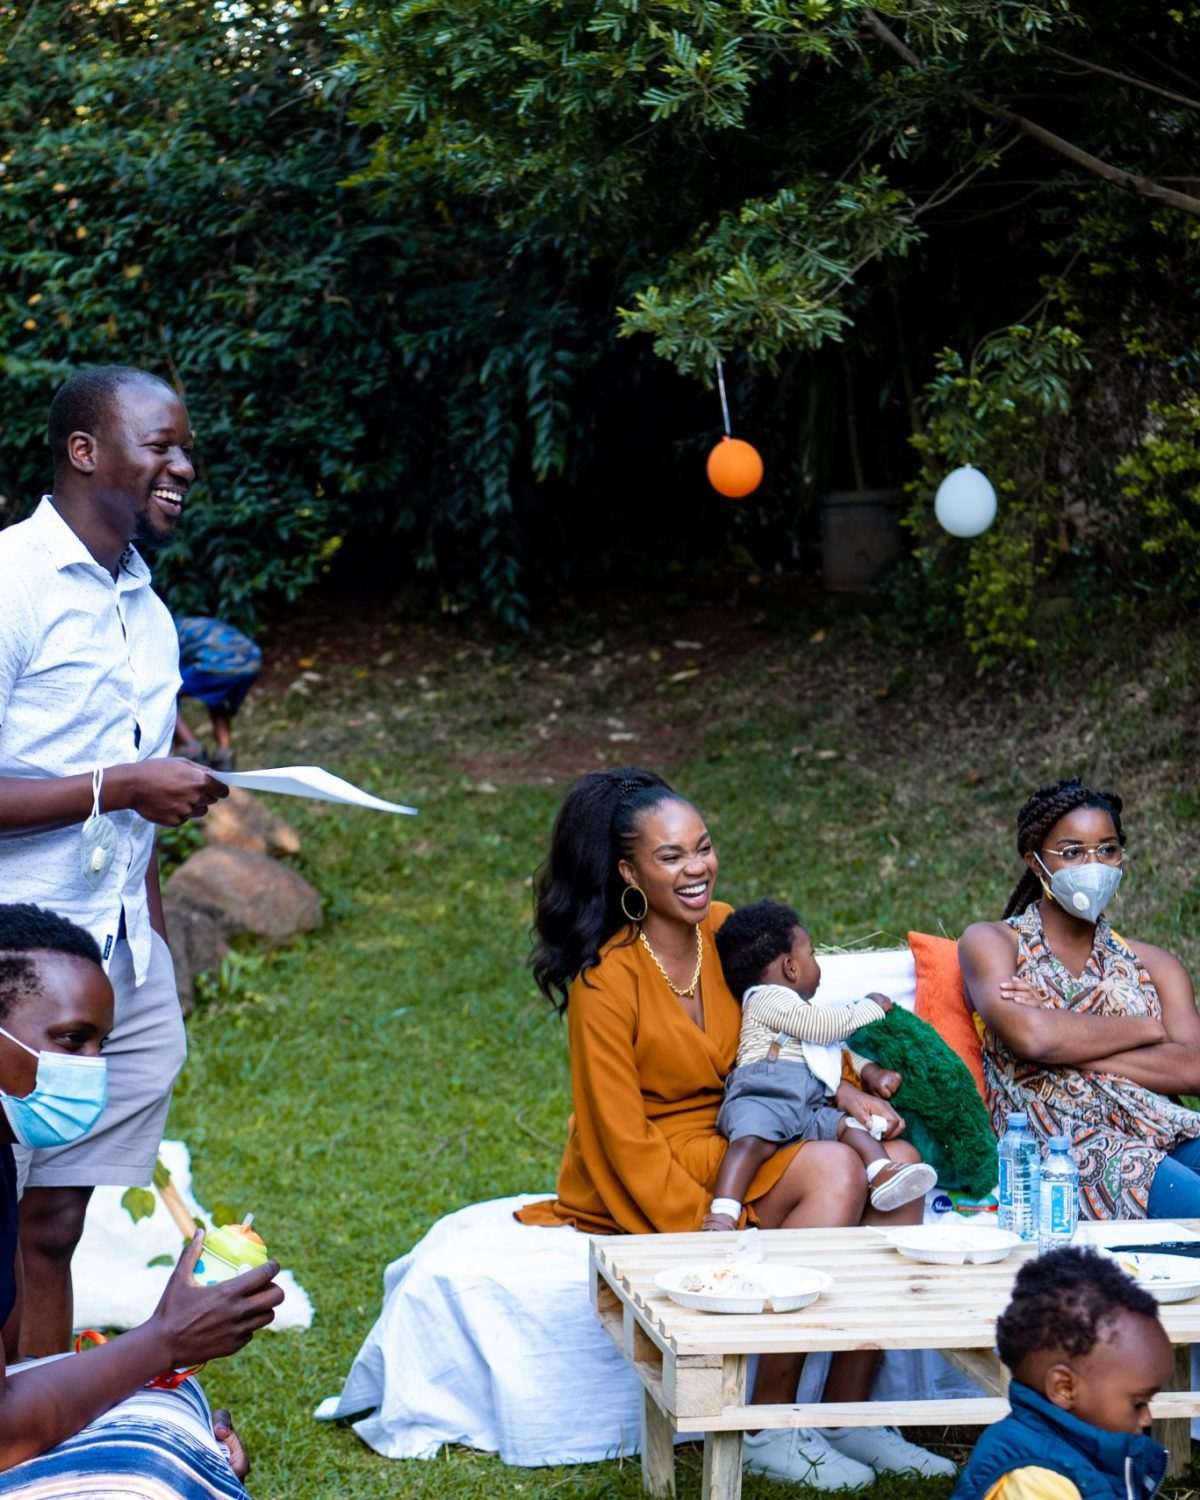 Ijeoma Kola laughing at picnic with baby on lap surrounded by family and friends